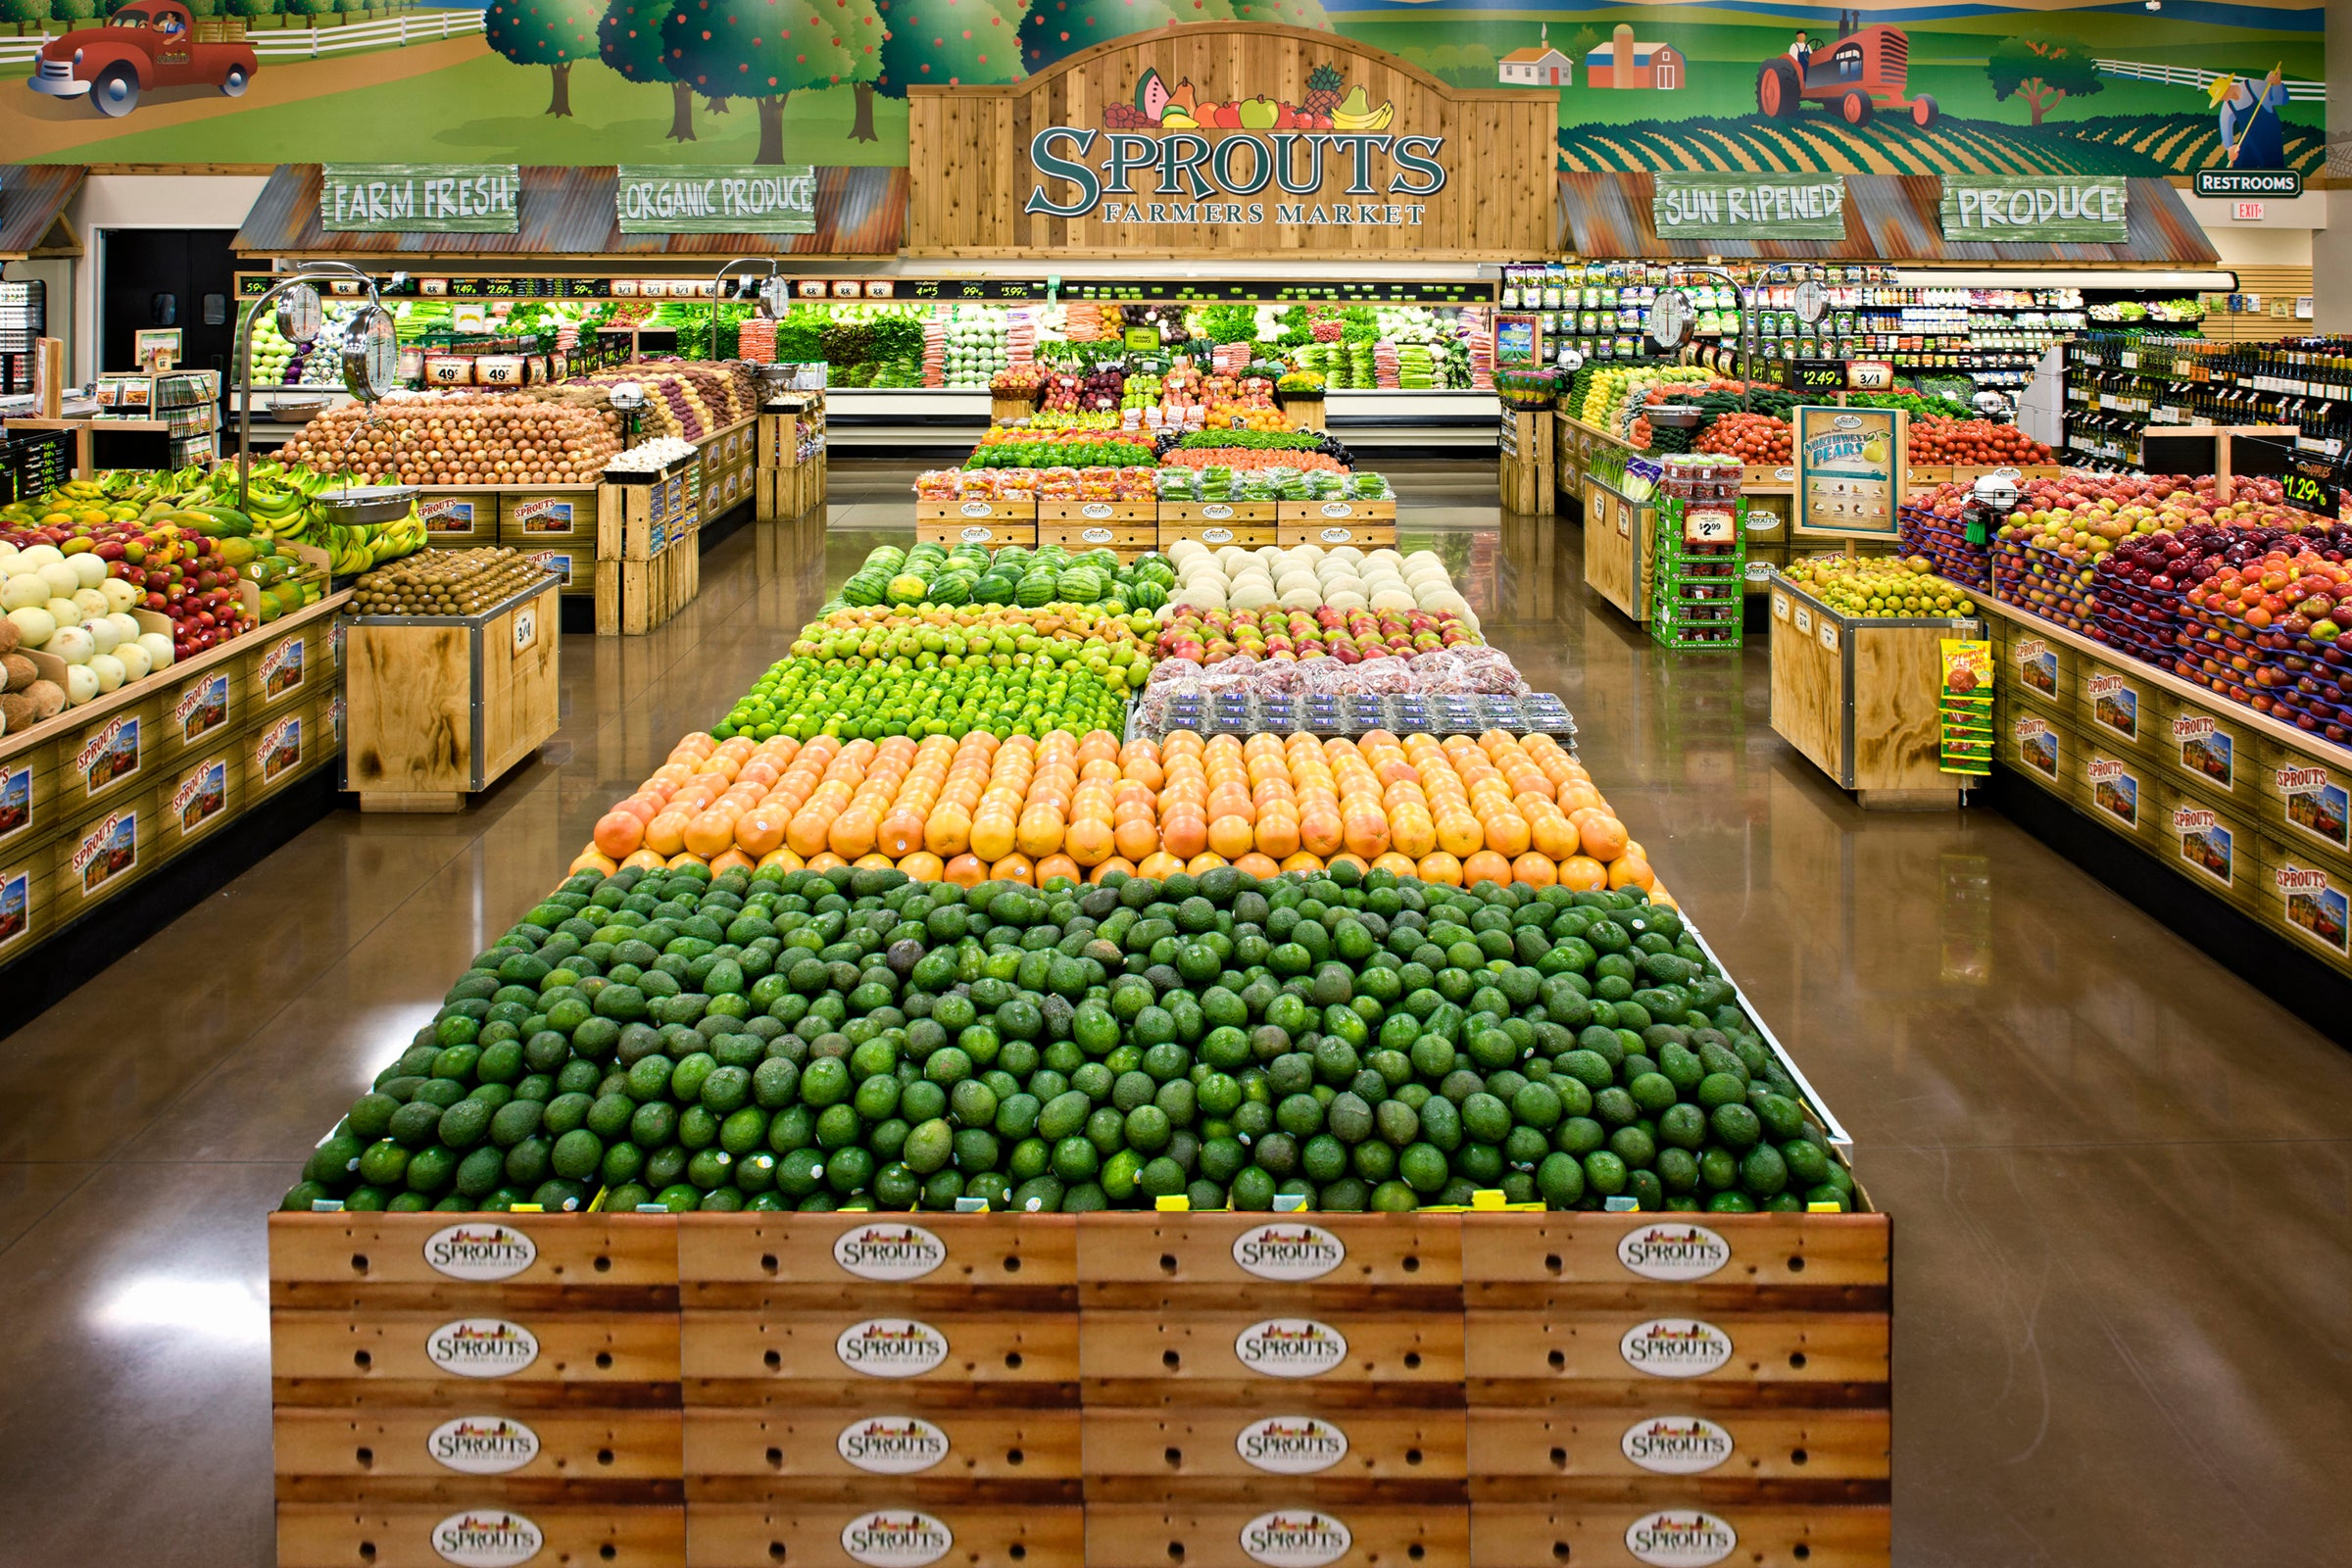 Neatly arranged produce at a Sprouts Farmers Market store